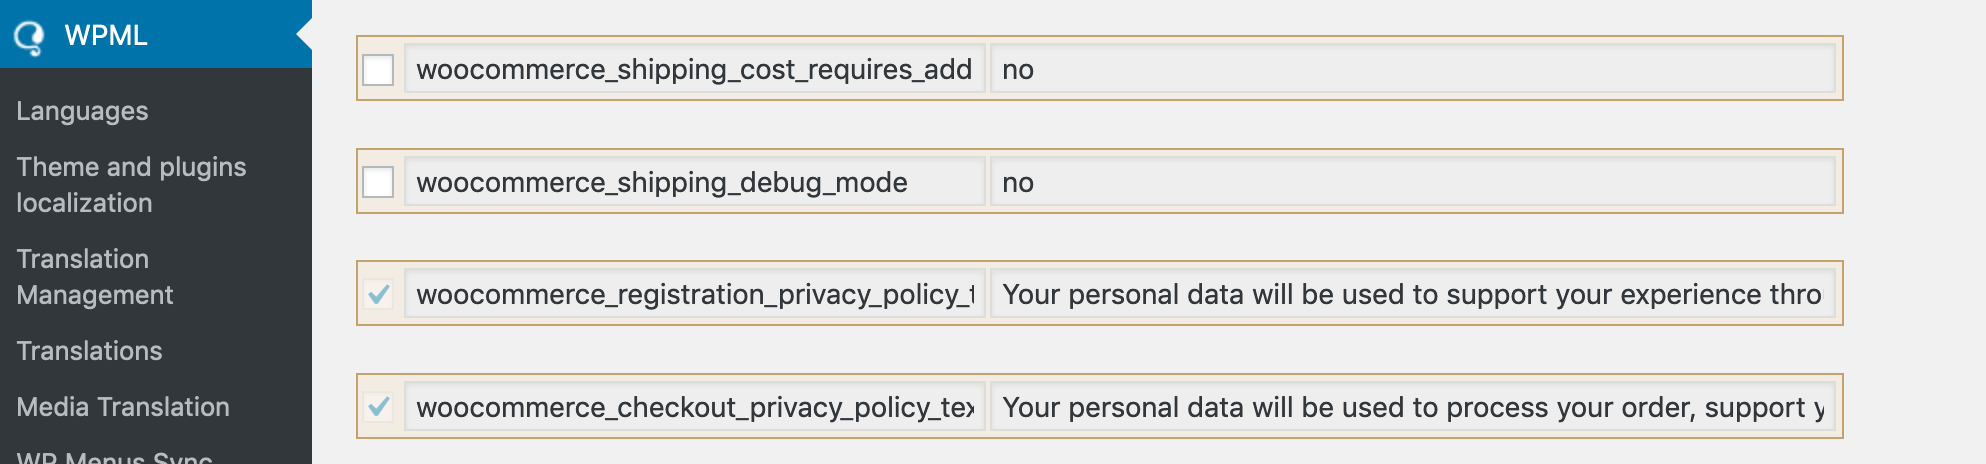 woocommerce_registration_privacy_policy_text.png